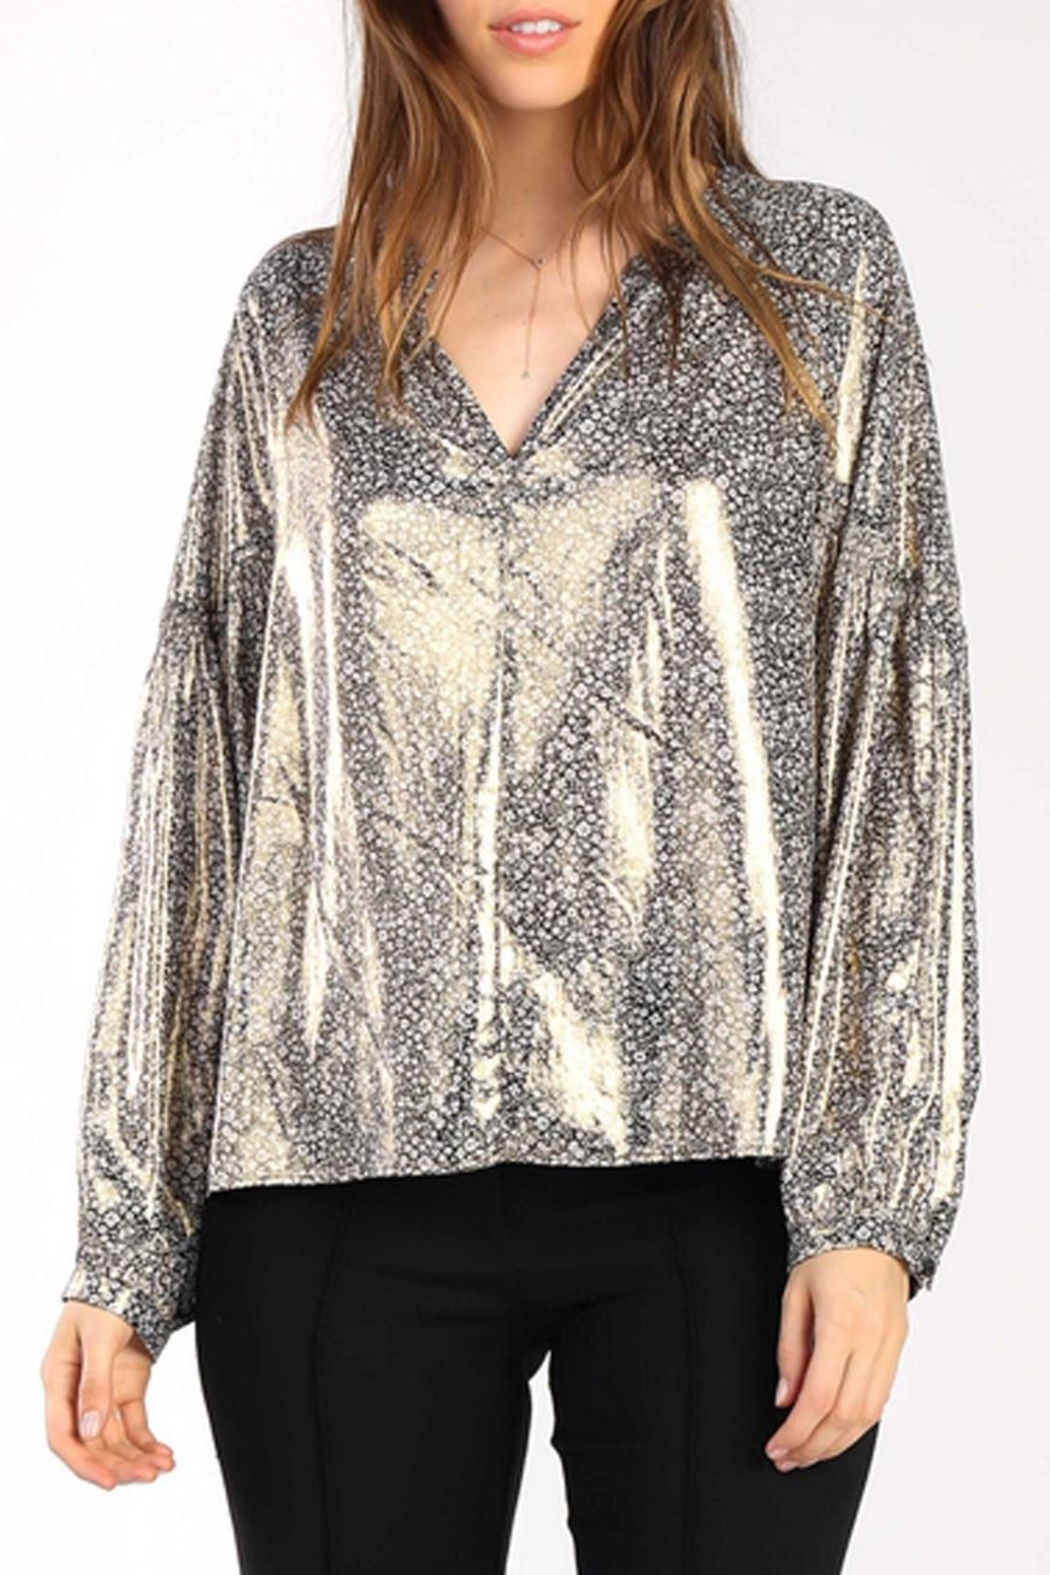 Current Air Floral Shimmer Blouse - Main Image